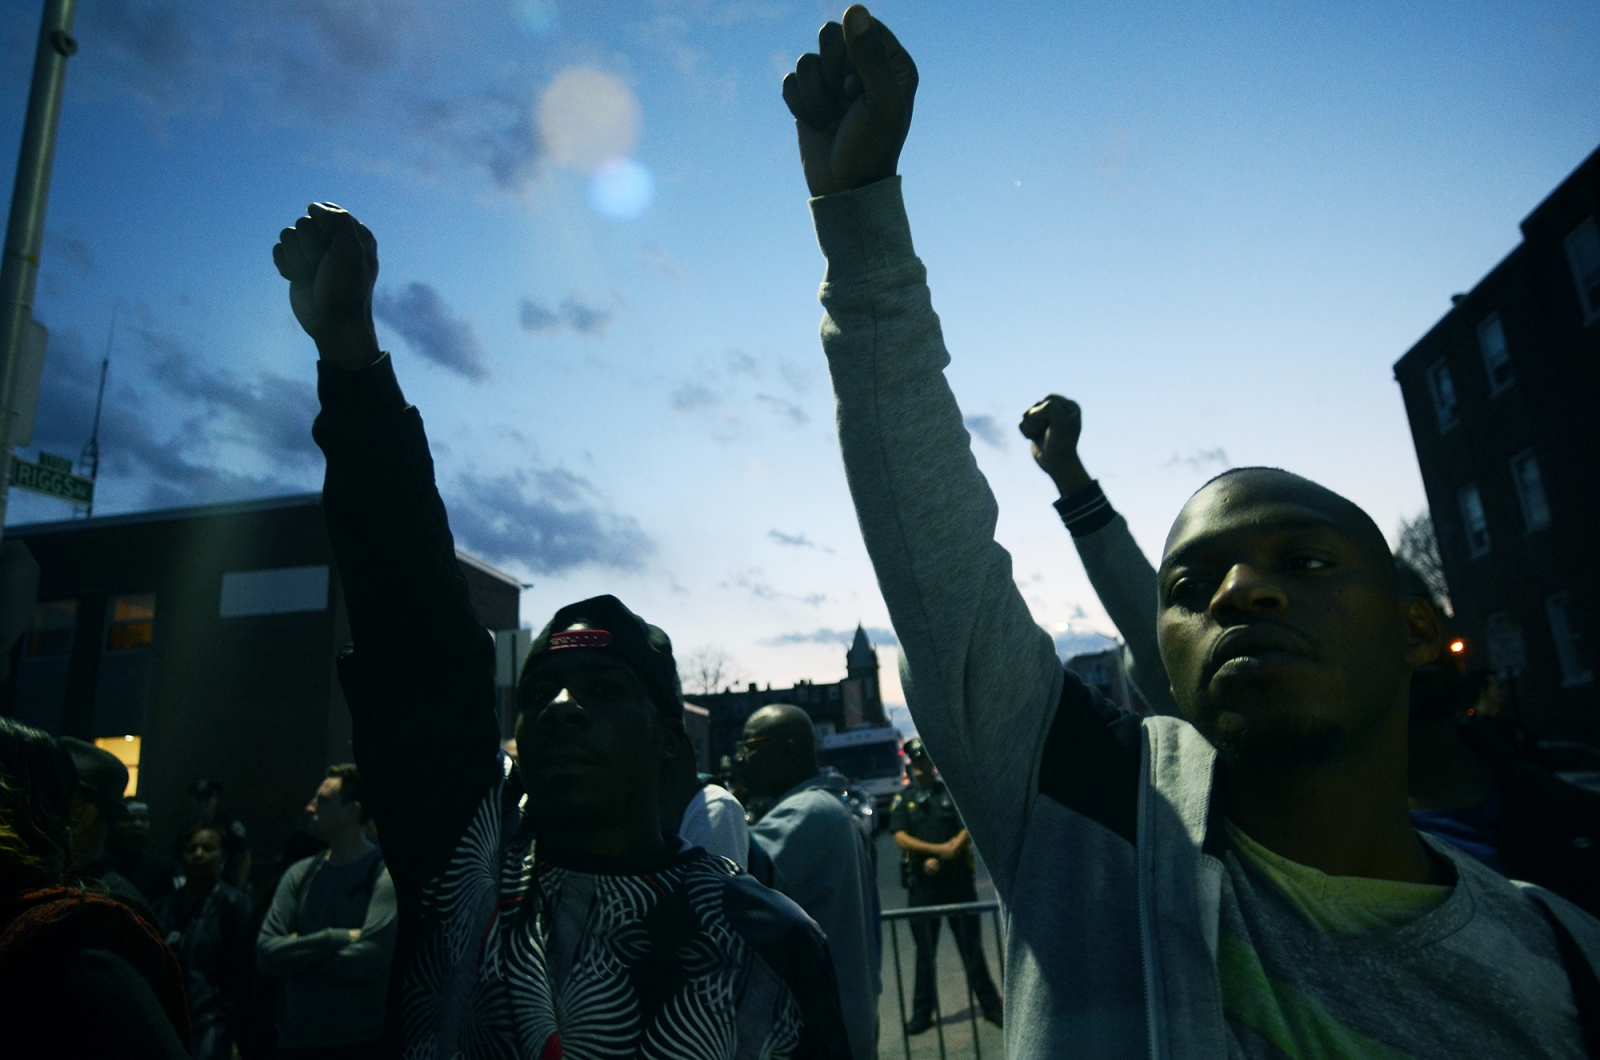 Baltimore- Men protesting the death of Freddie Gray while in police custody raise their fists during a rally at the city's Western District